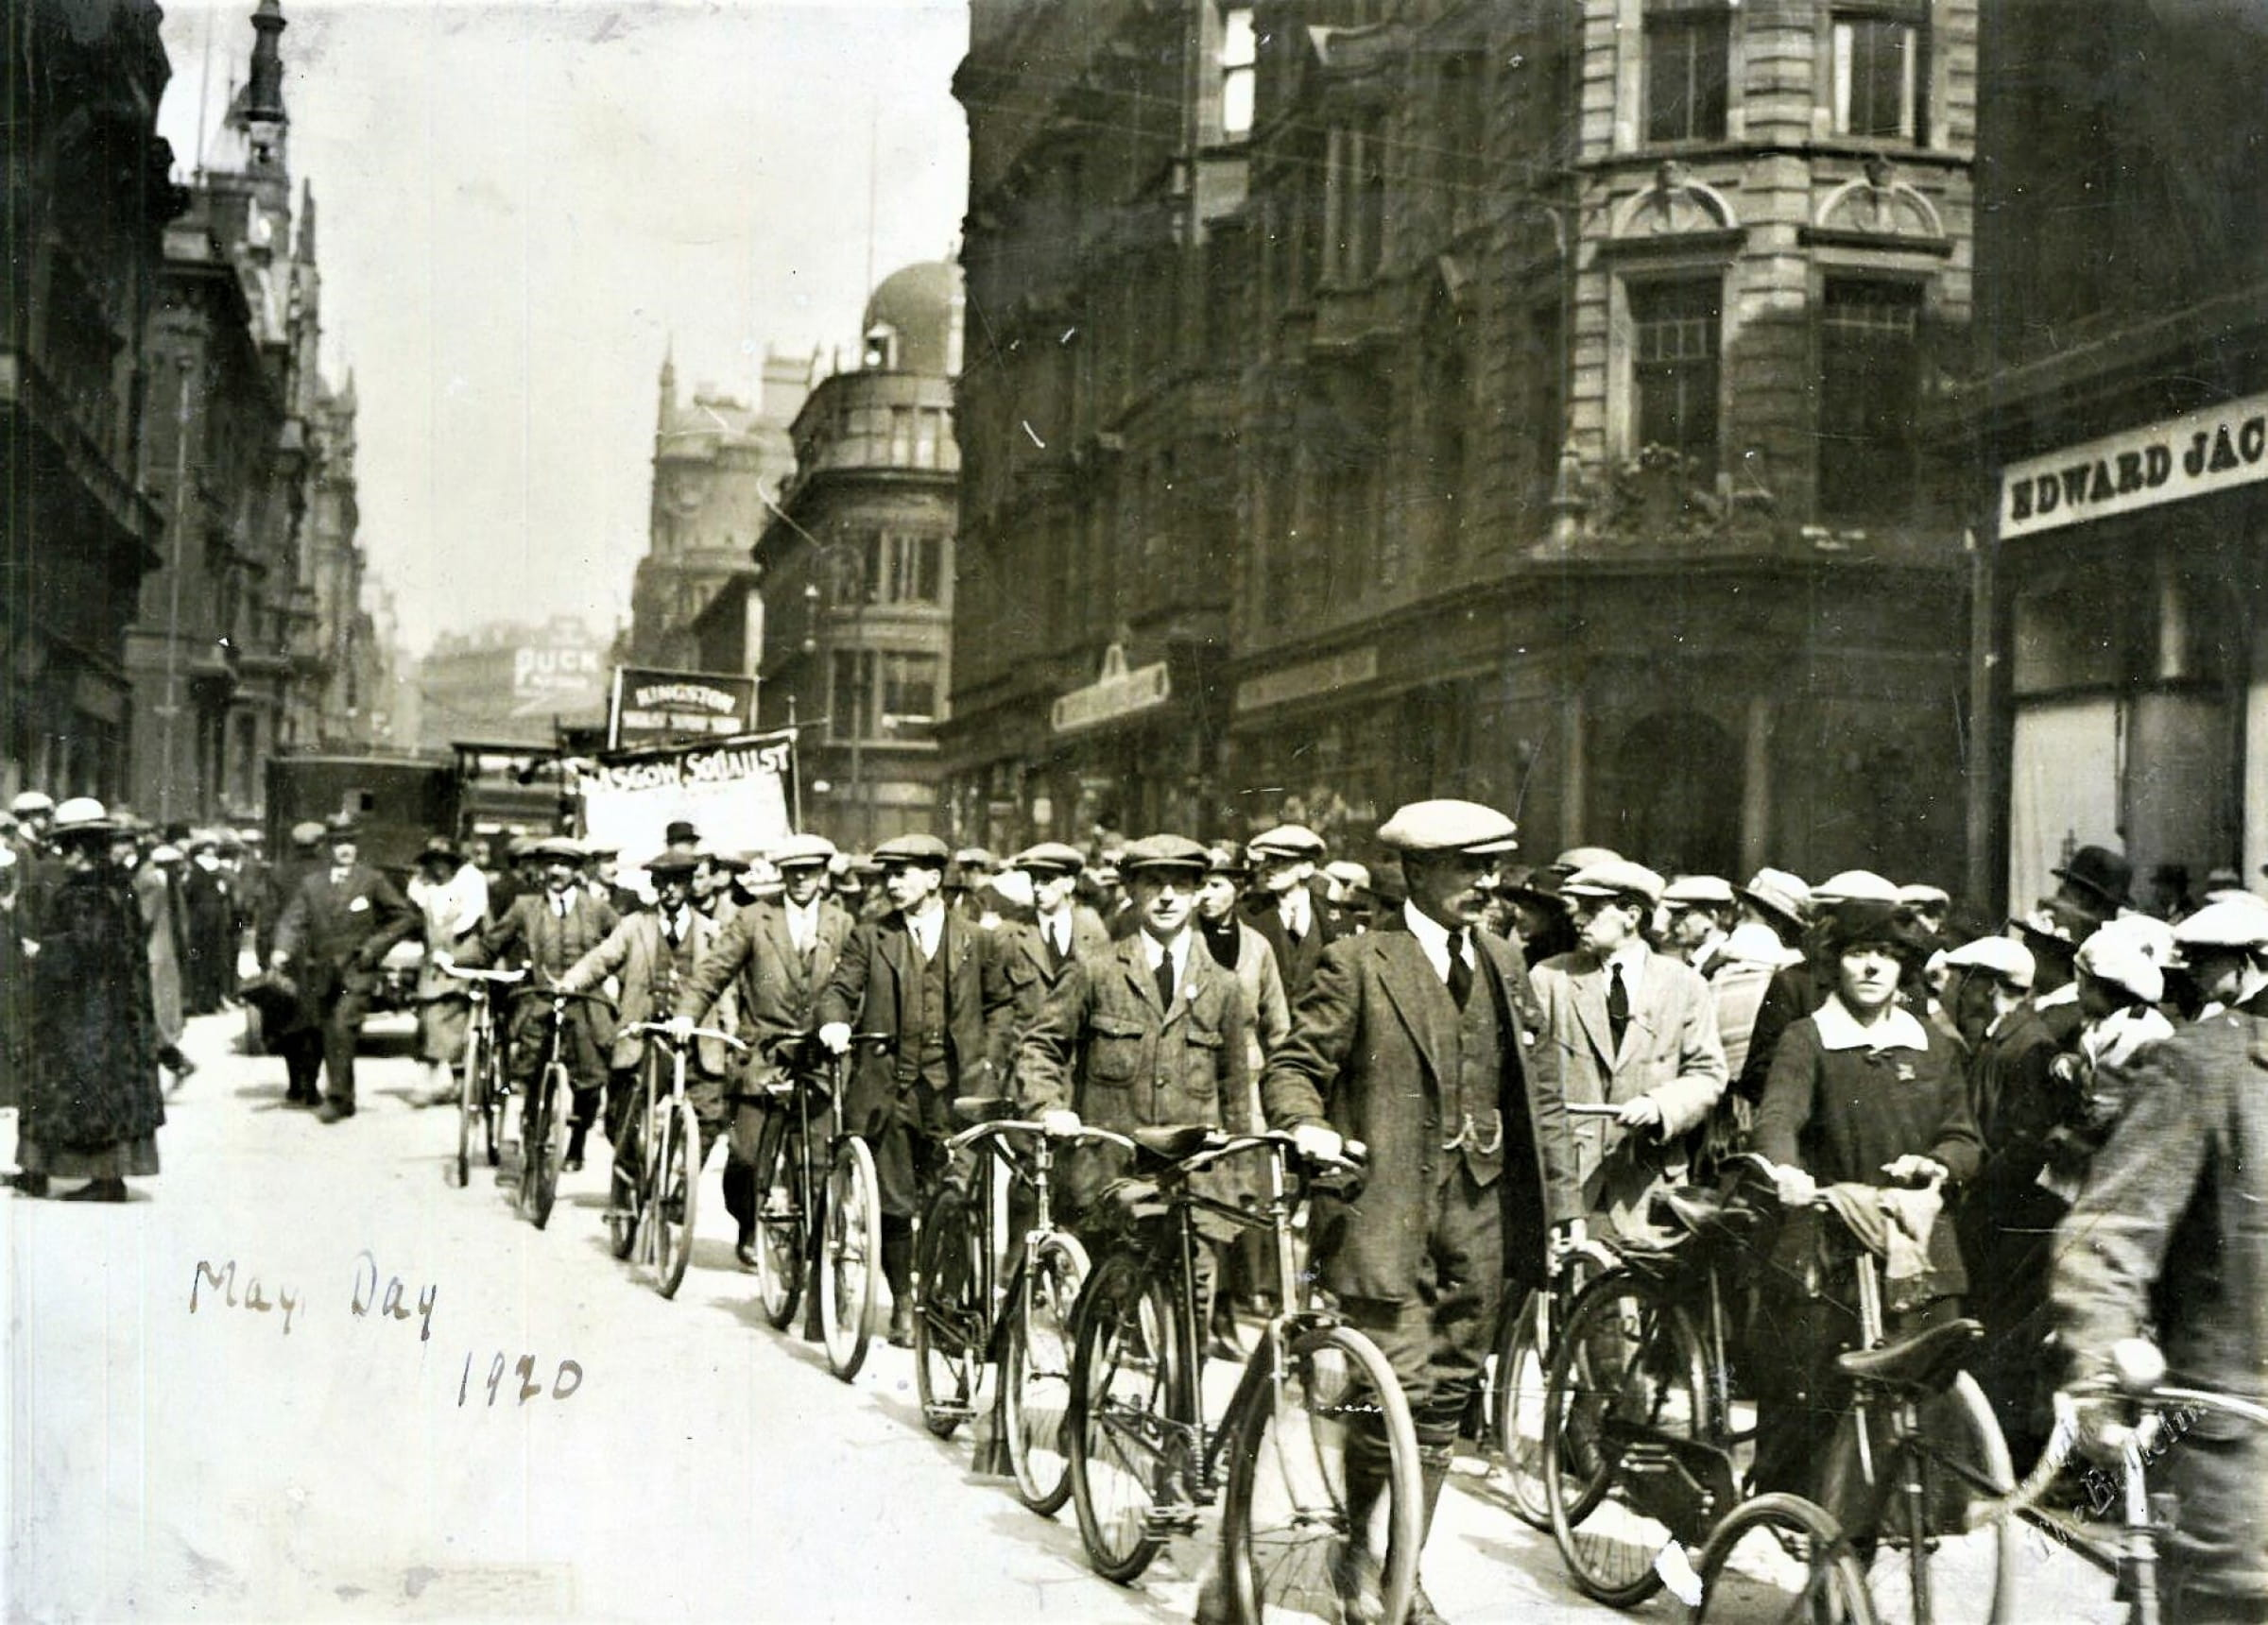 The Clarion call (May Day, 1920, Buchanan Street Picture: Glasgow City Archives)